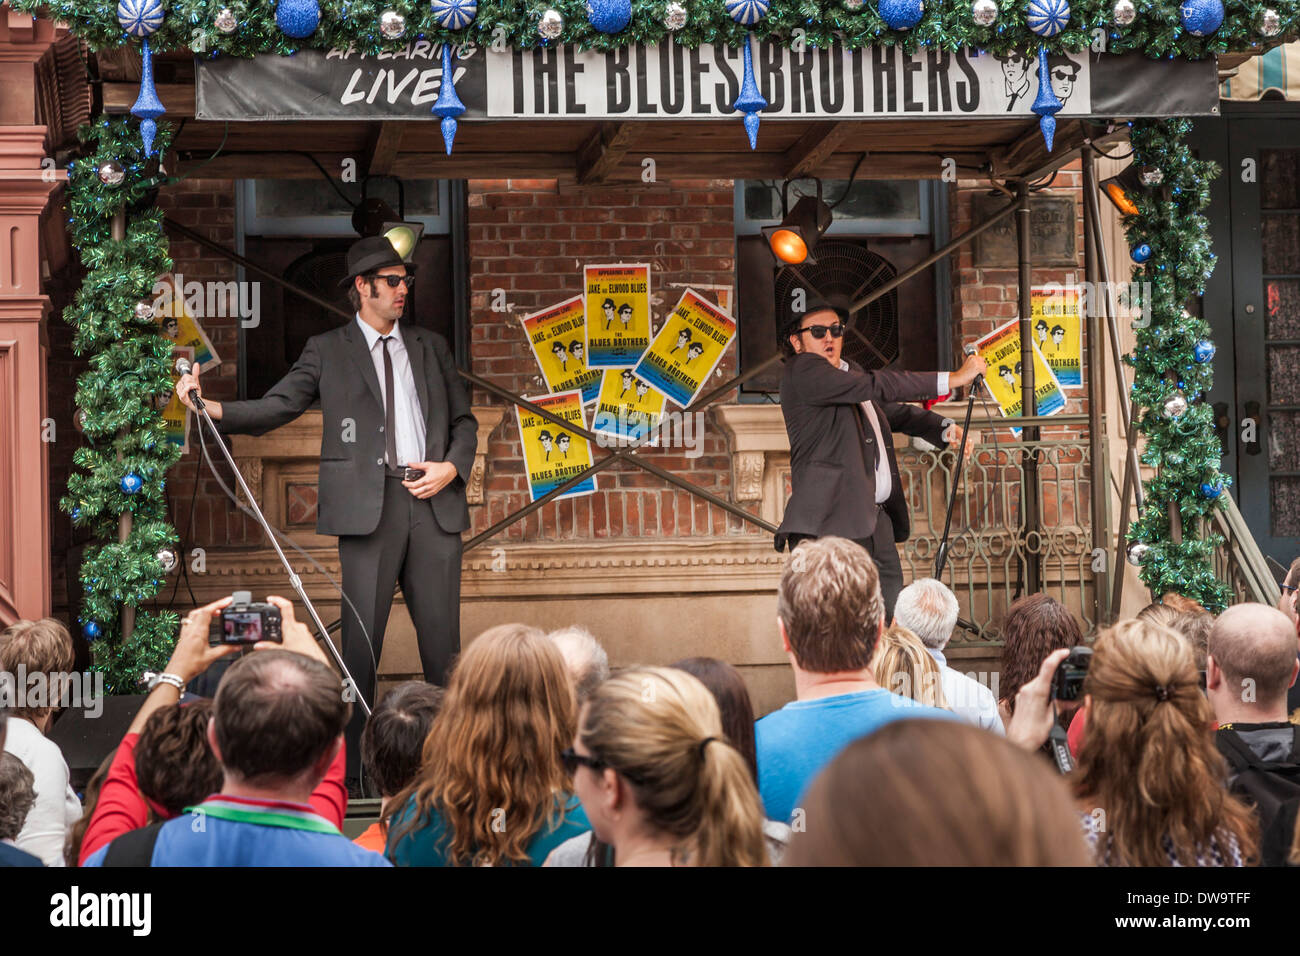 Park guests watch the live Blues Brothers show on the street in Universal Studios theme park in Orlando, Florida - Stock Image